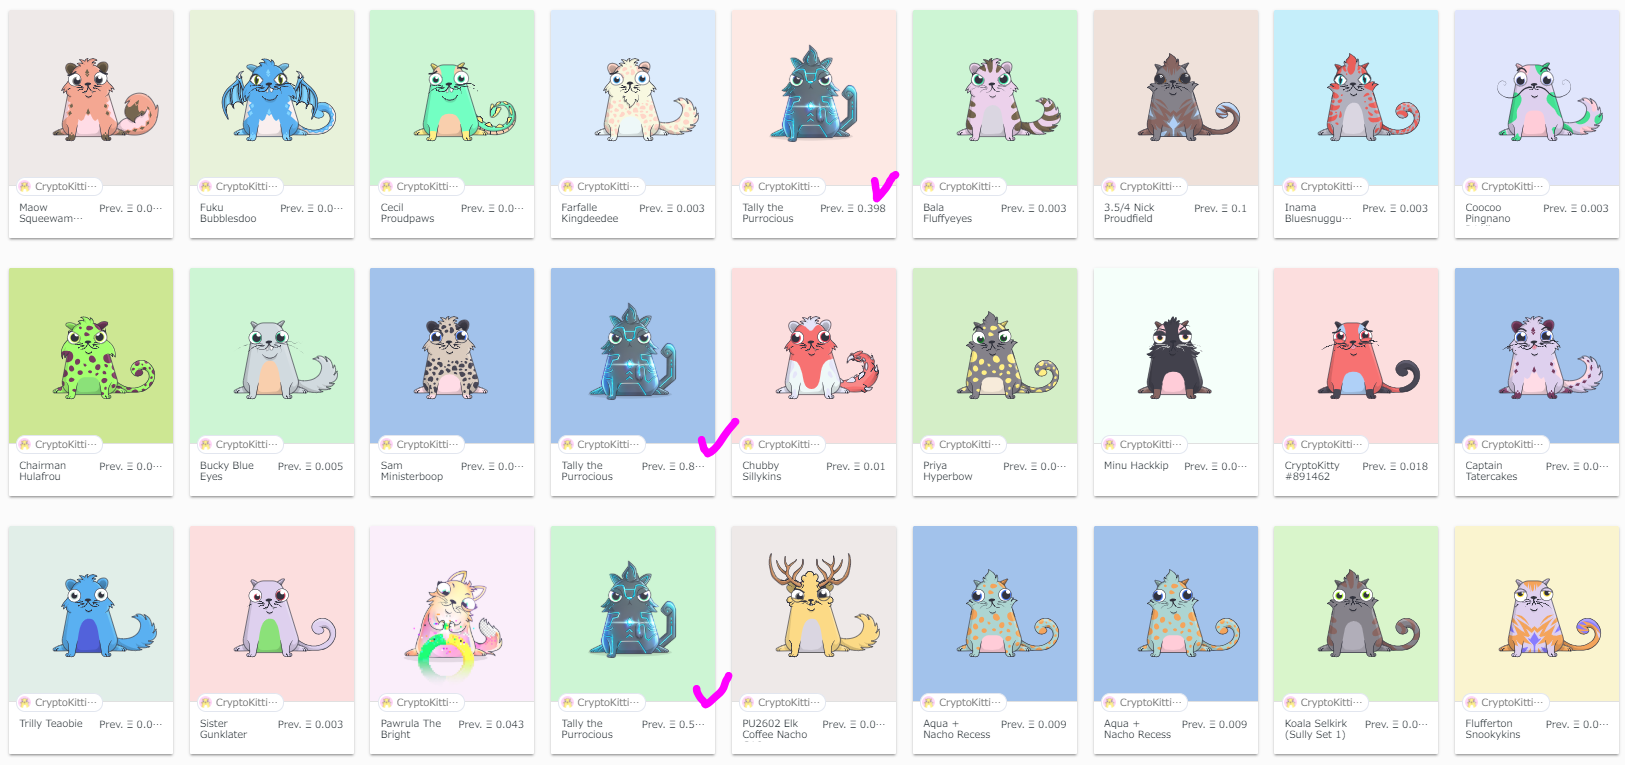 Cryptokitties190111-15